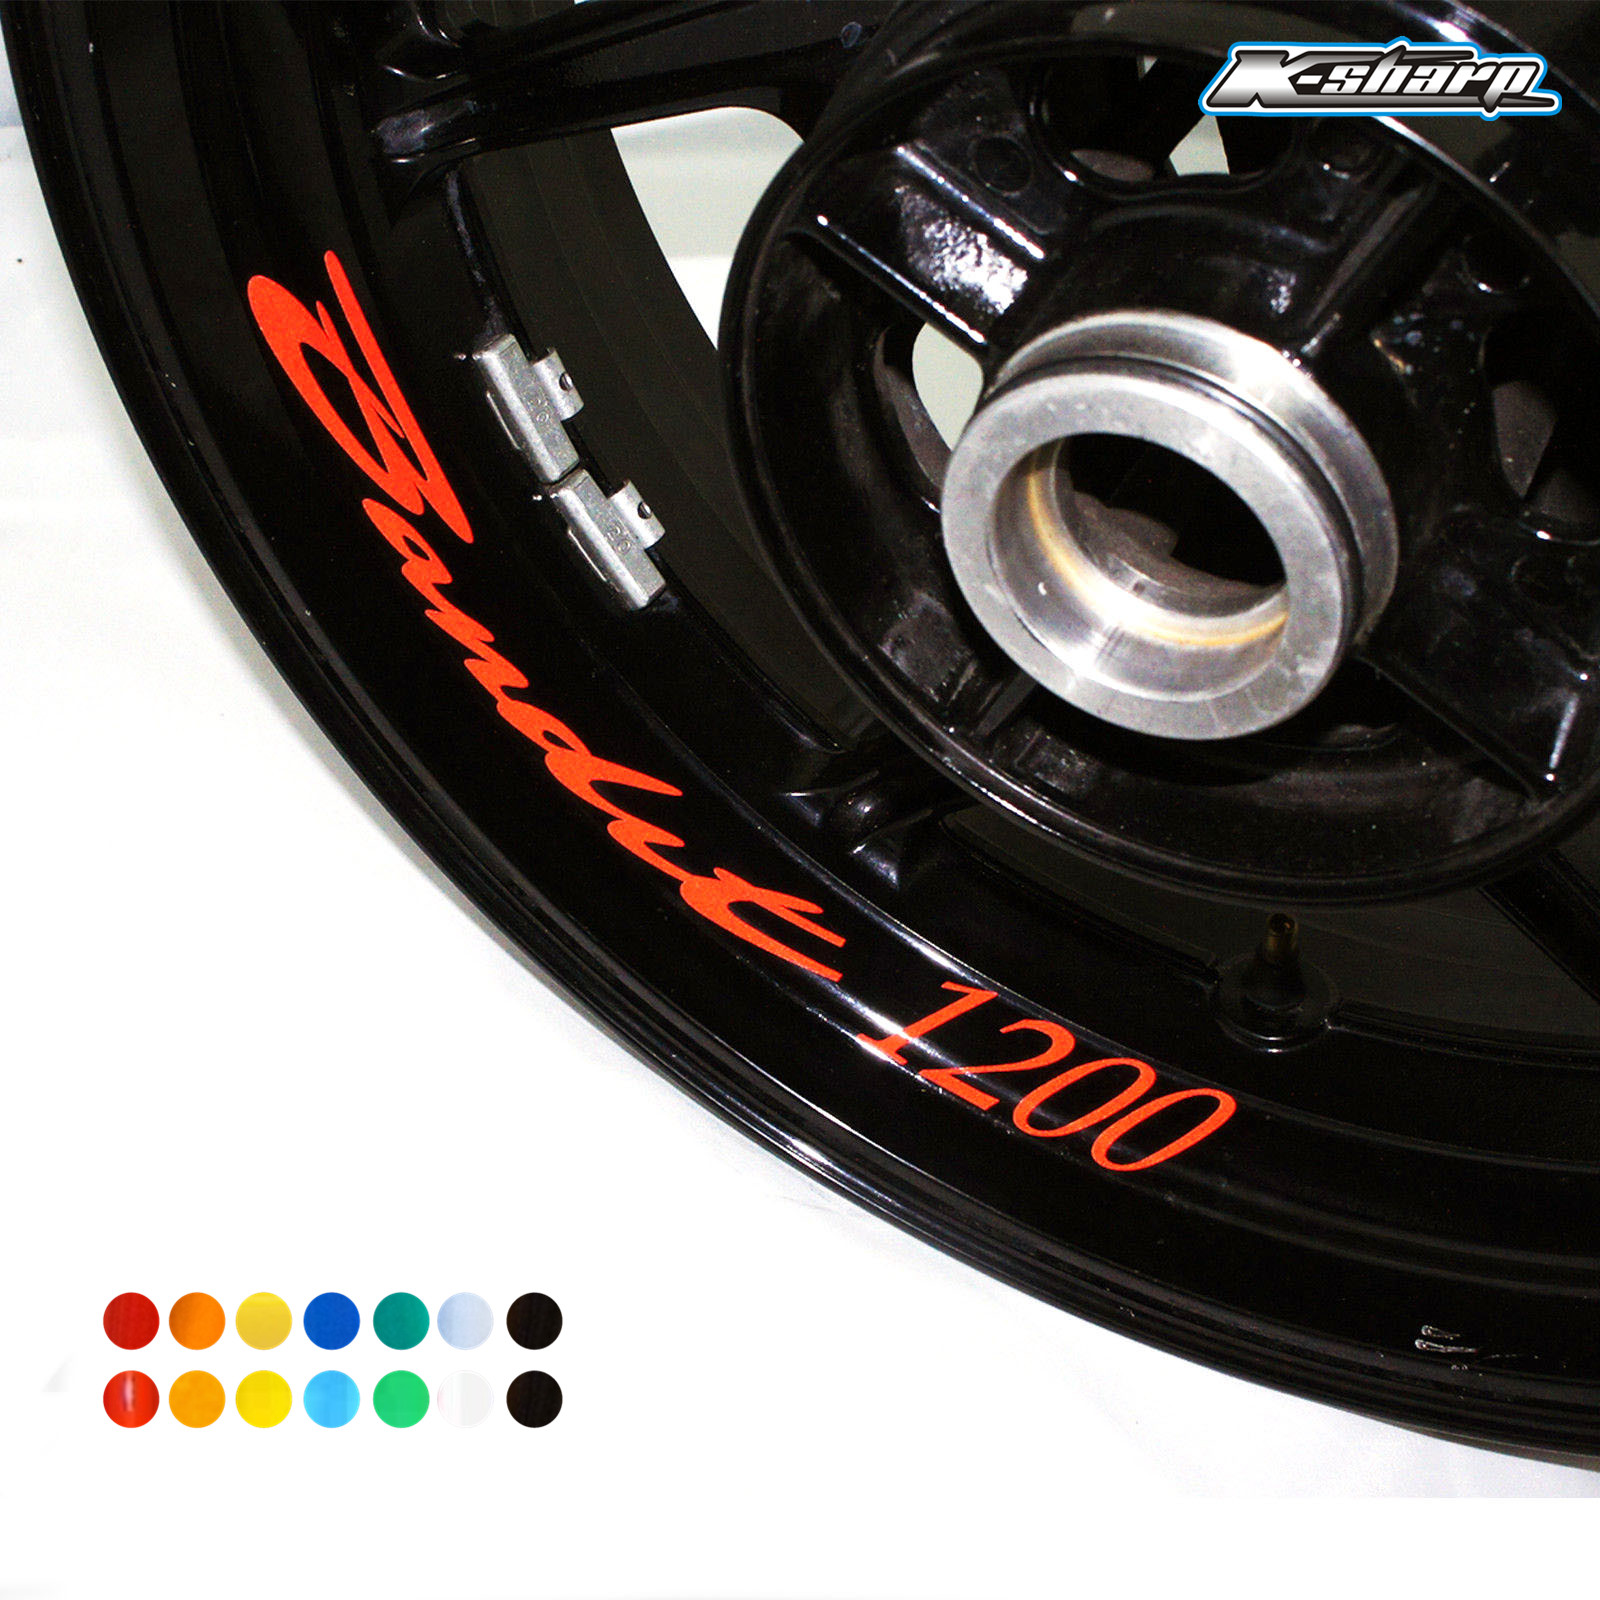 8 X Custon Inner Rim Decals Wheel Reflective Stickers Stripes FIT SUZUKI BANDIT 1200 BANDIT1200